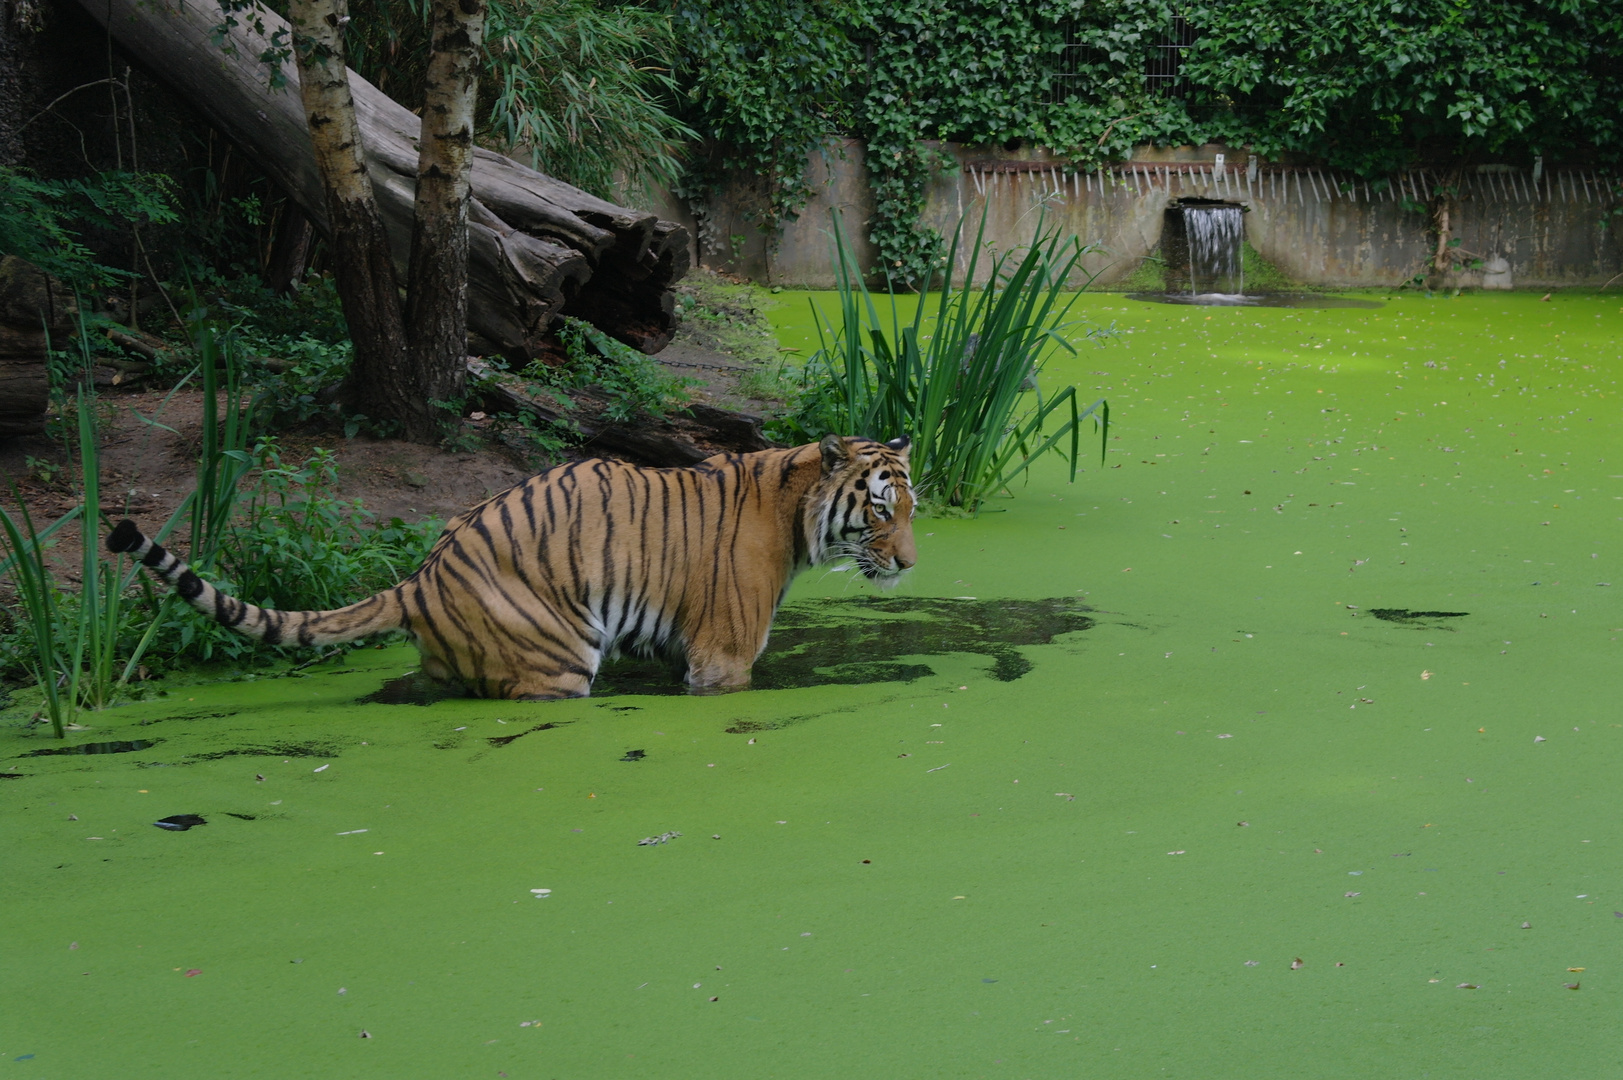 Tiger in watter